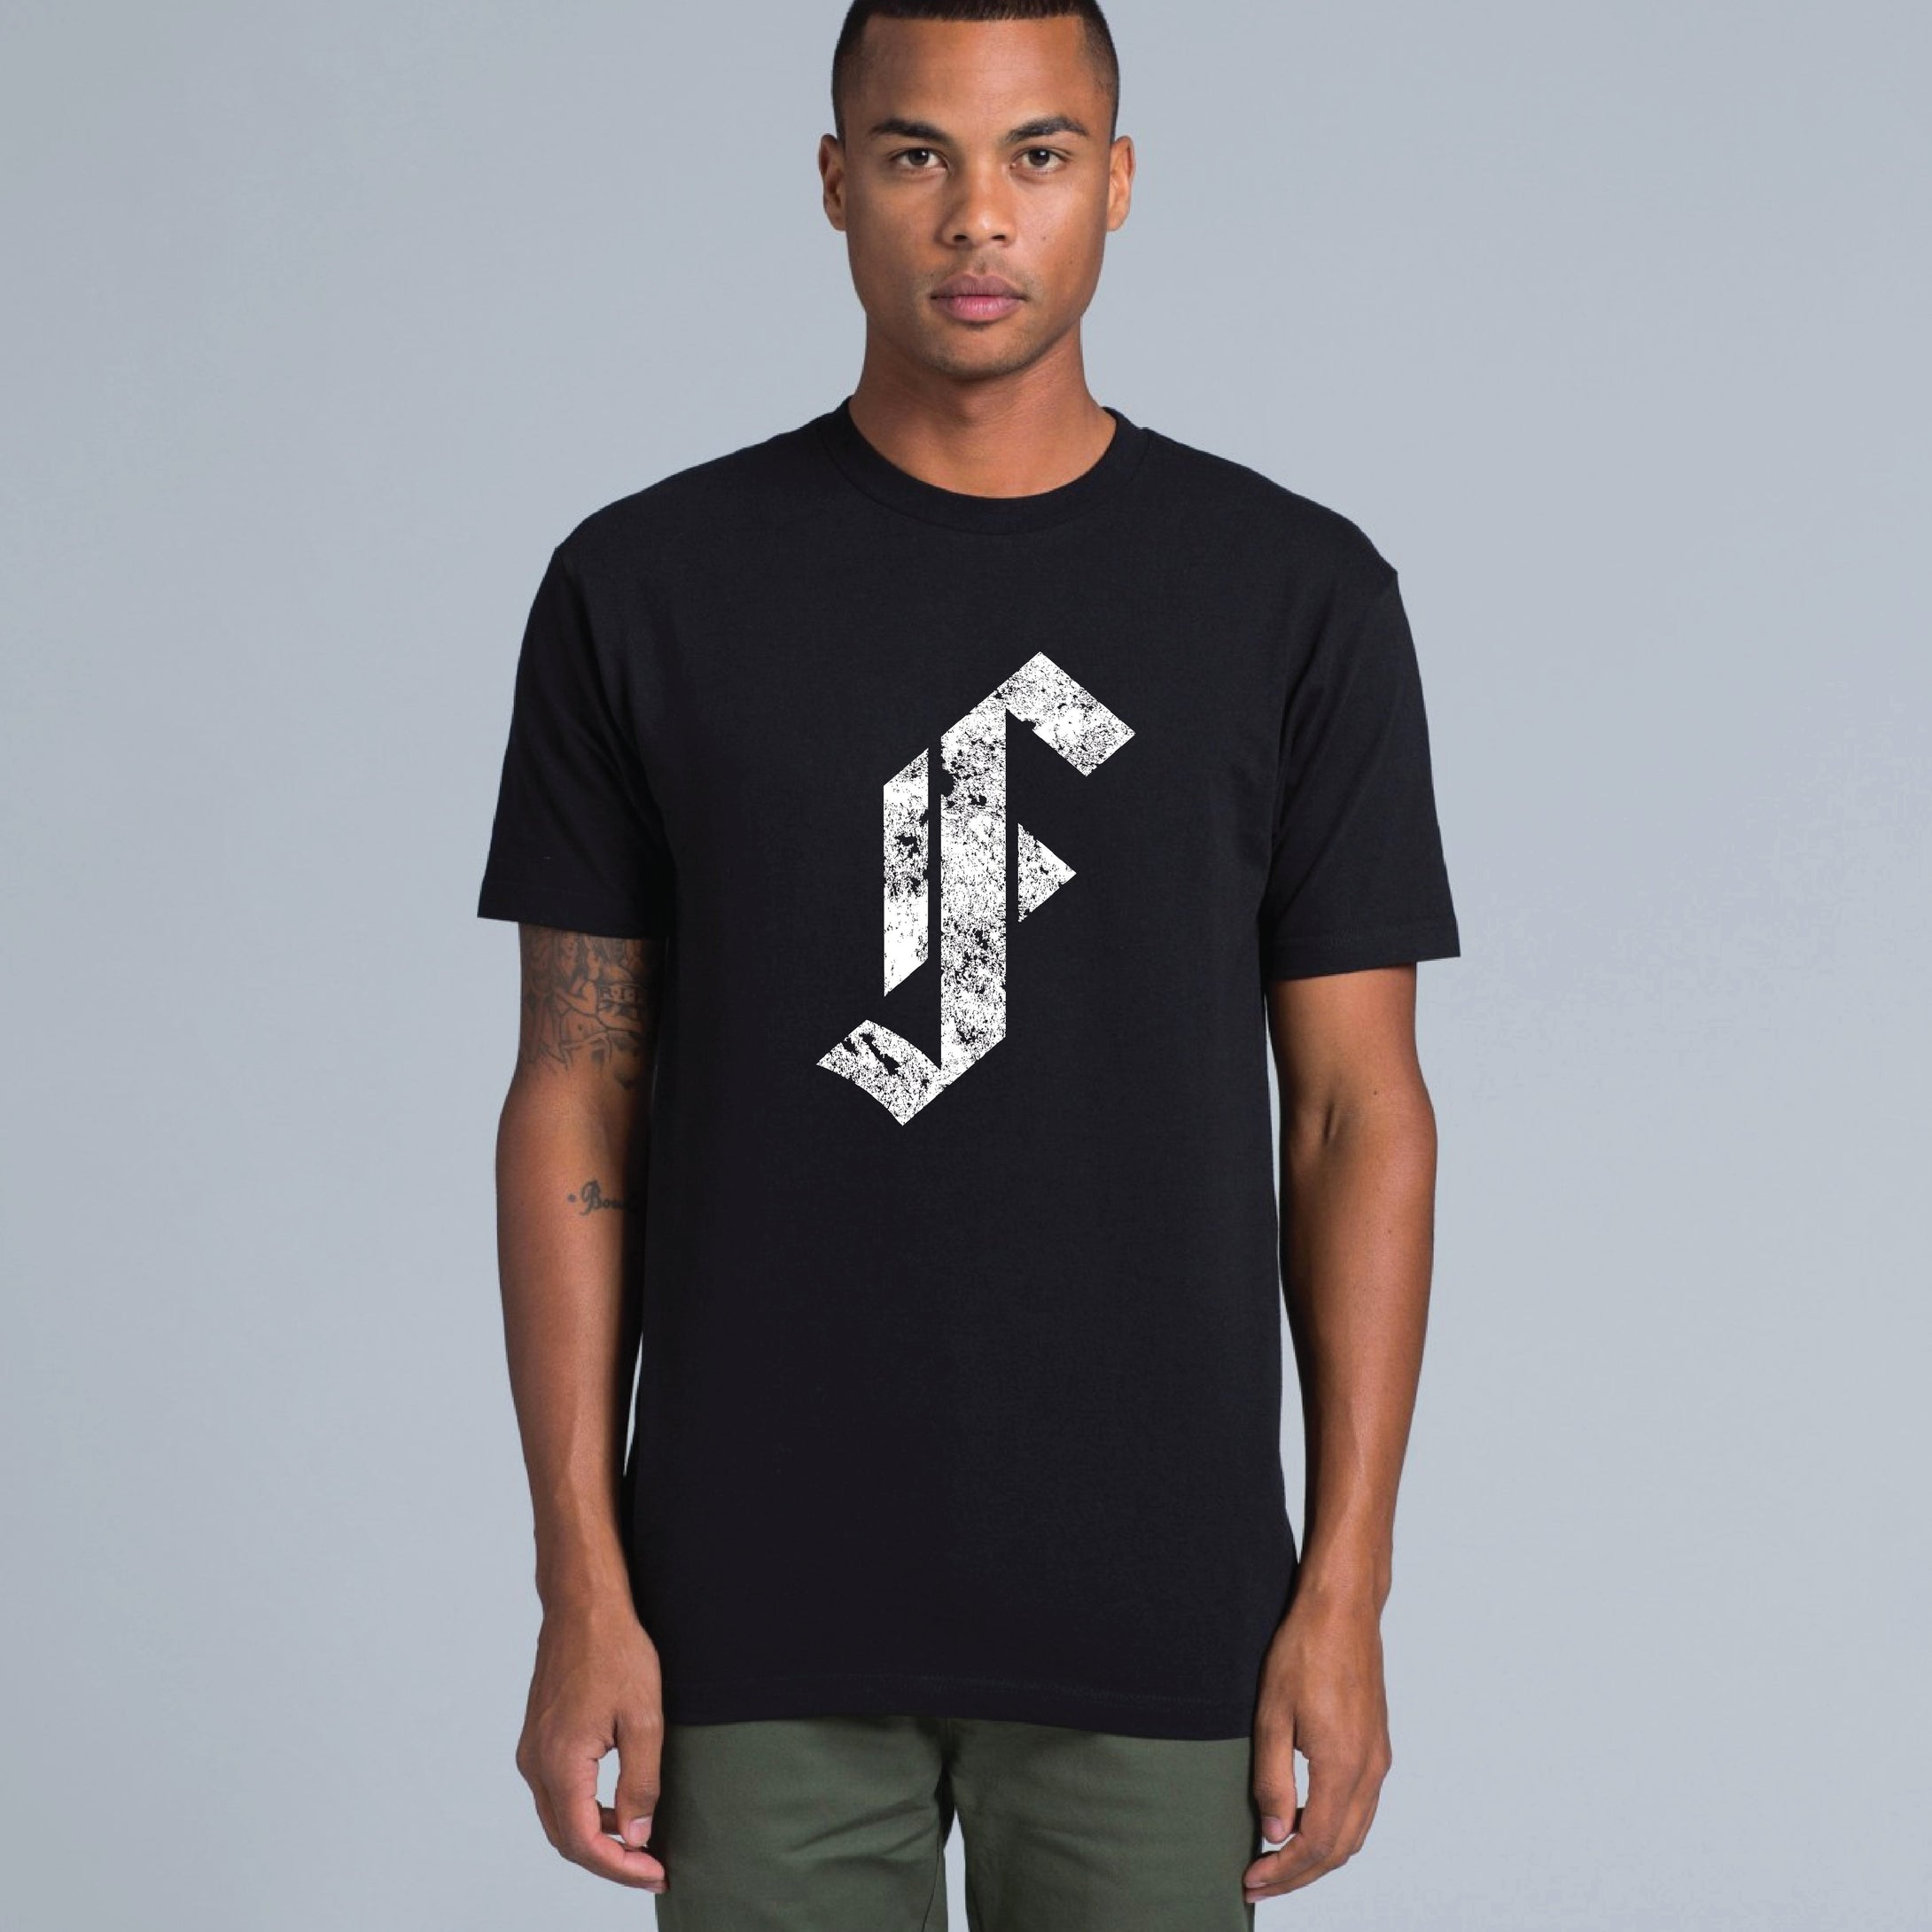 Framingham 'F' Tee Shirt White on Black - Male